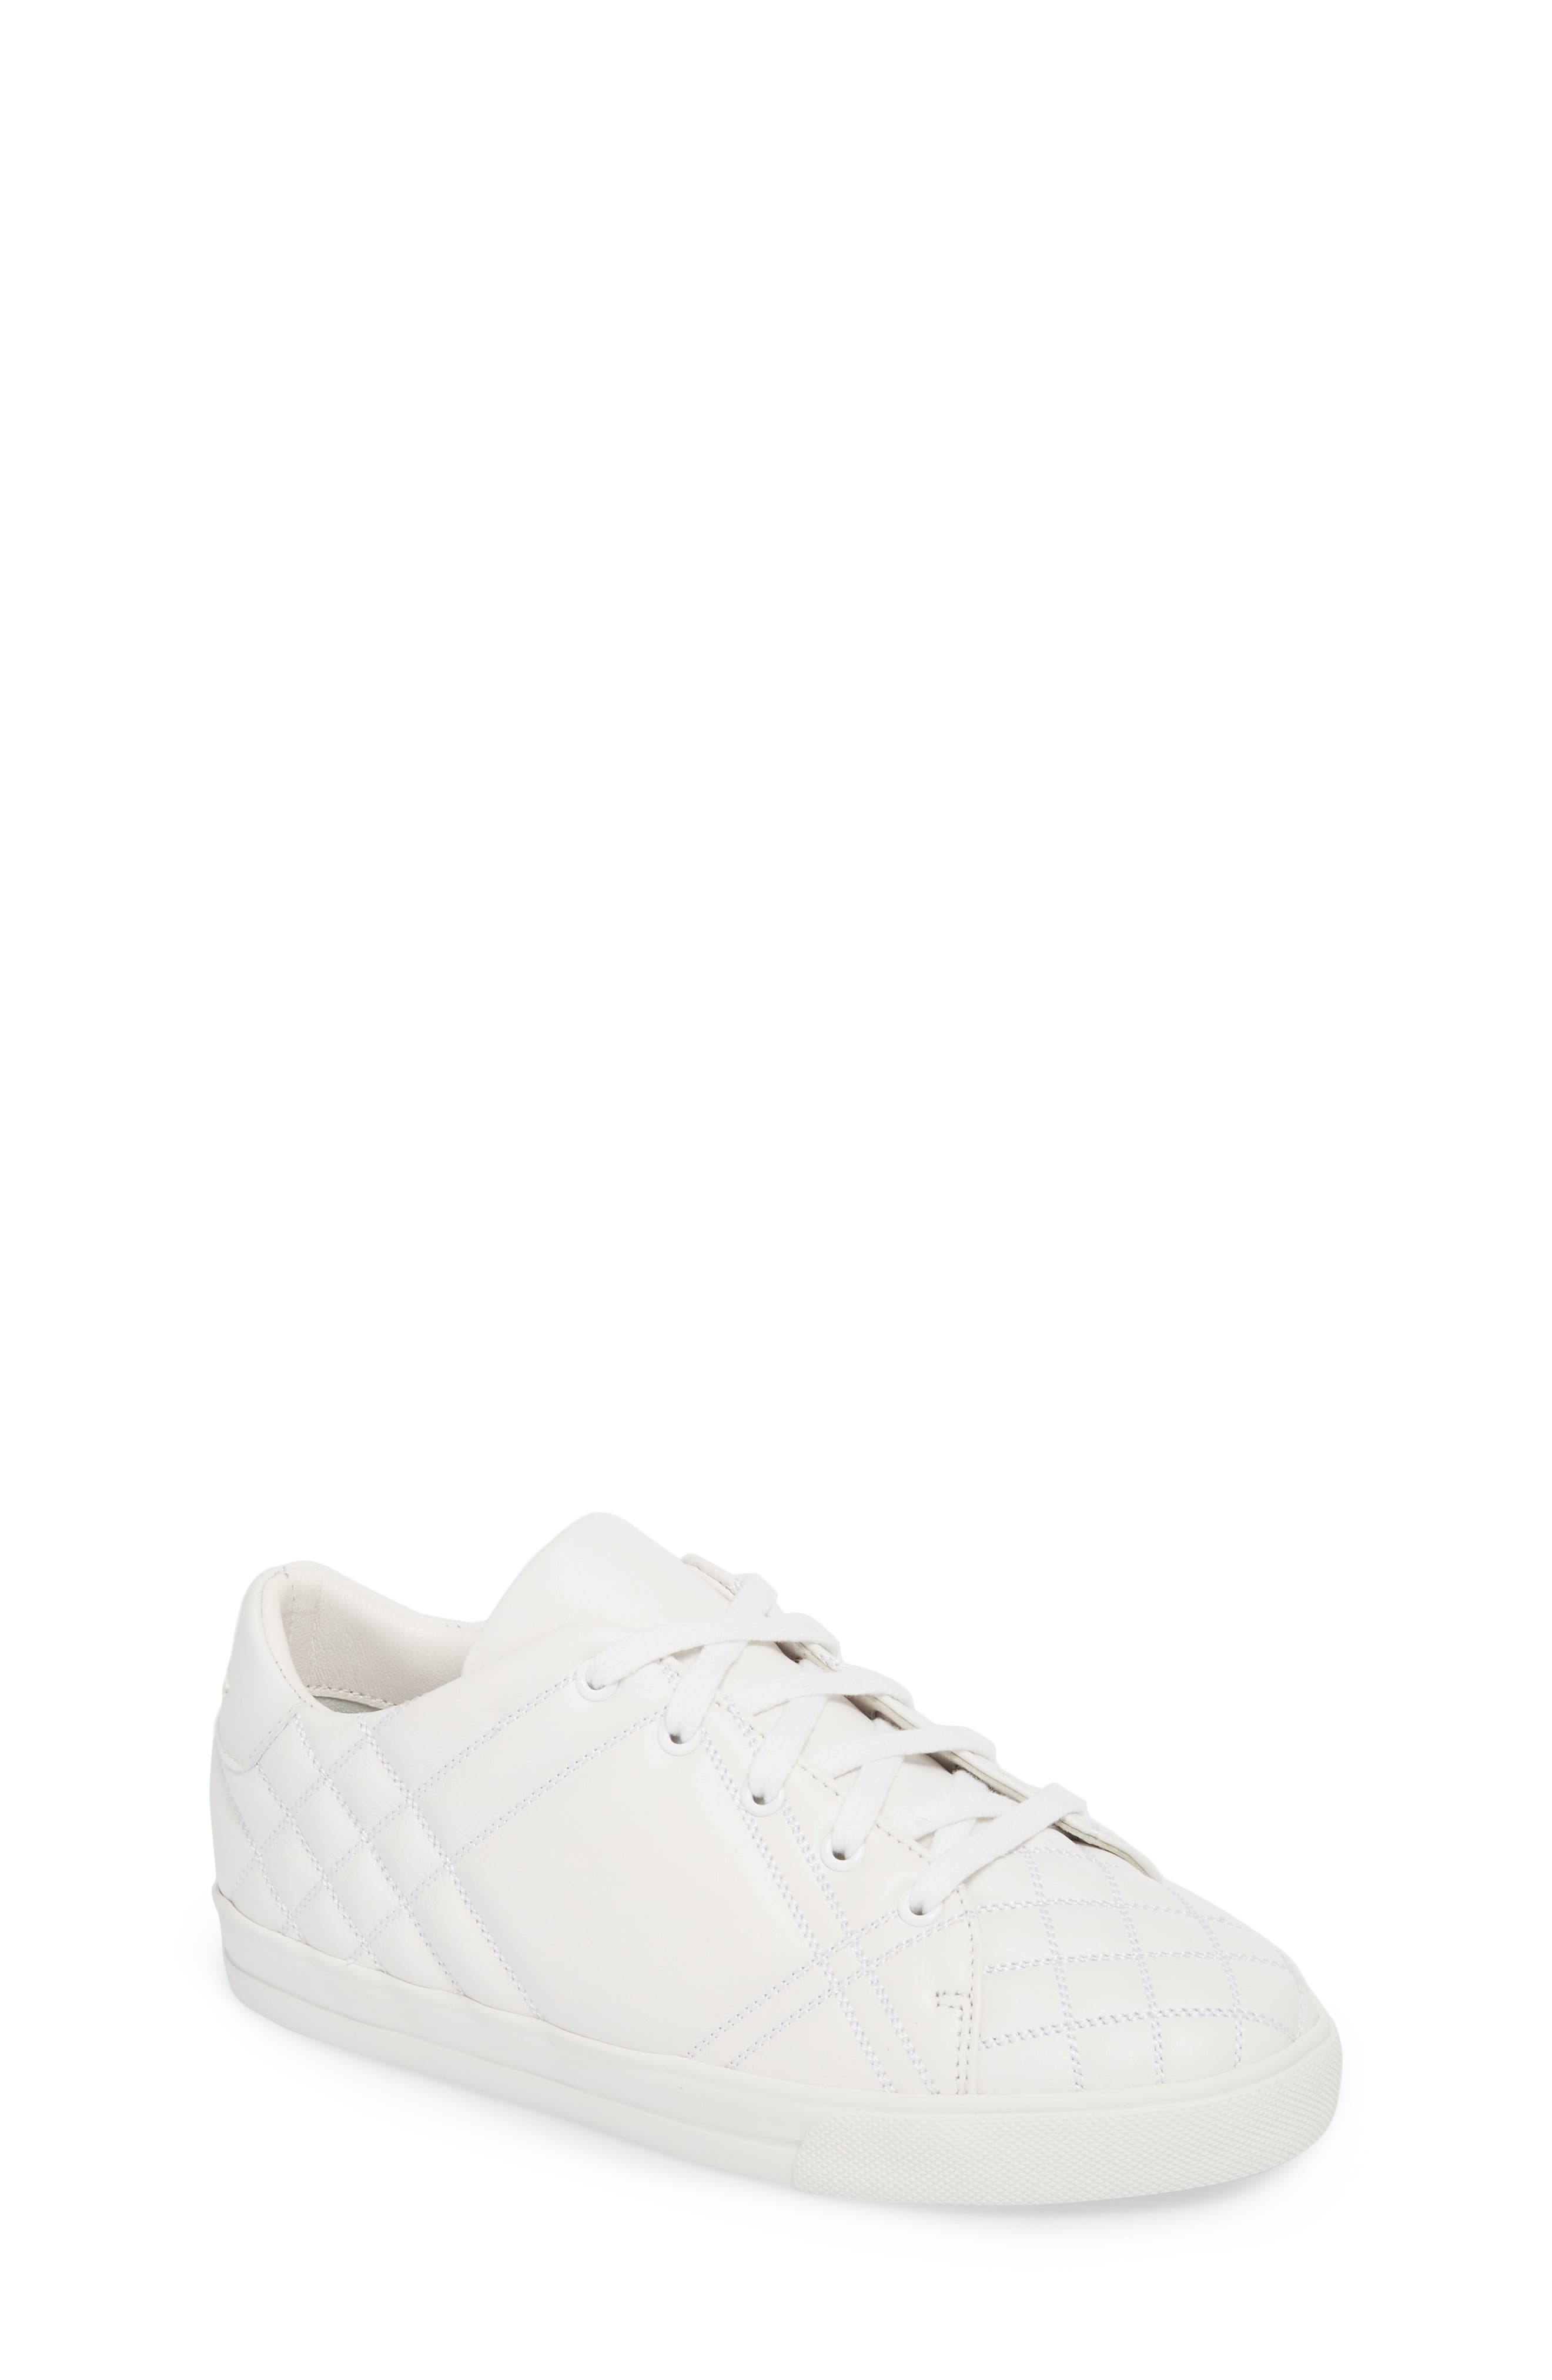 Burberry Mini Westford Sneaker (Walker, Toddler & Little Kid)